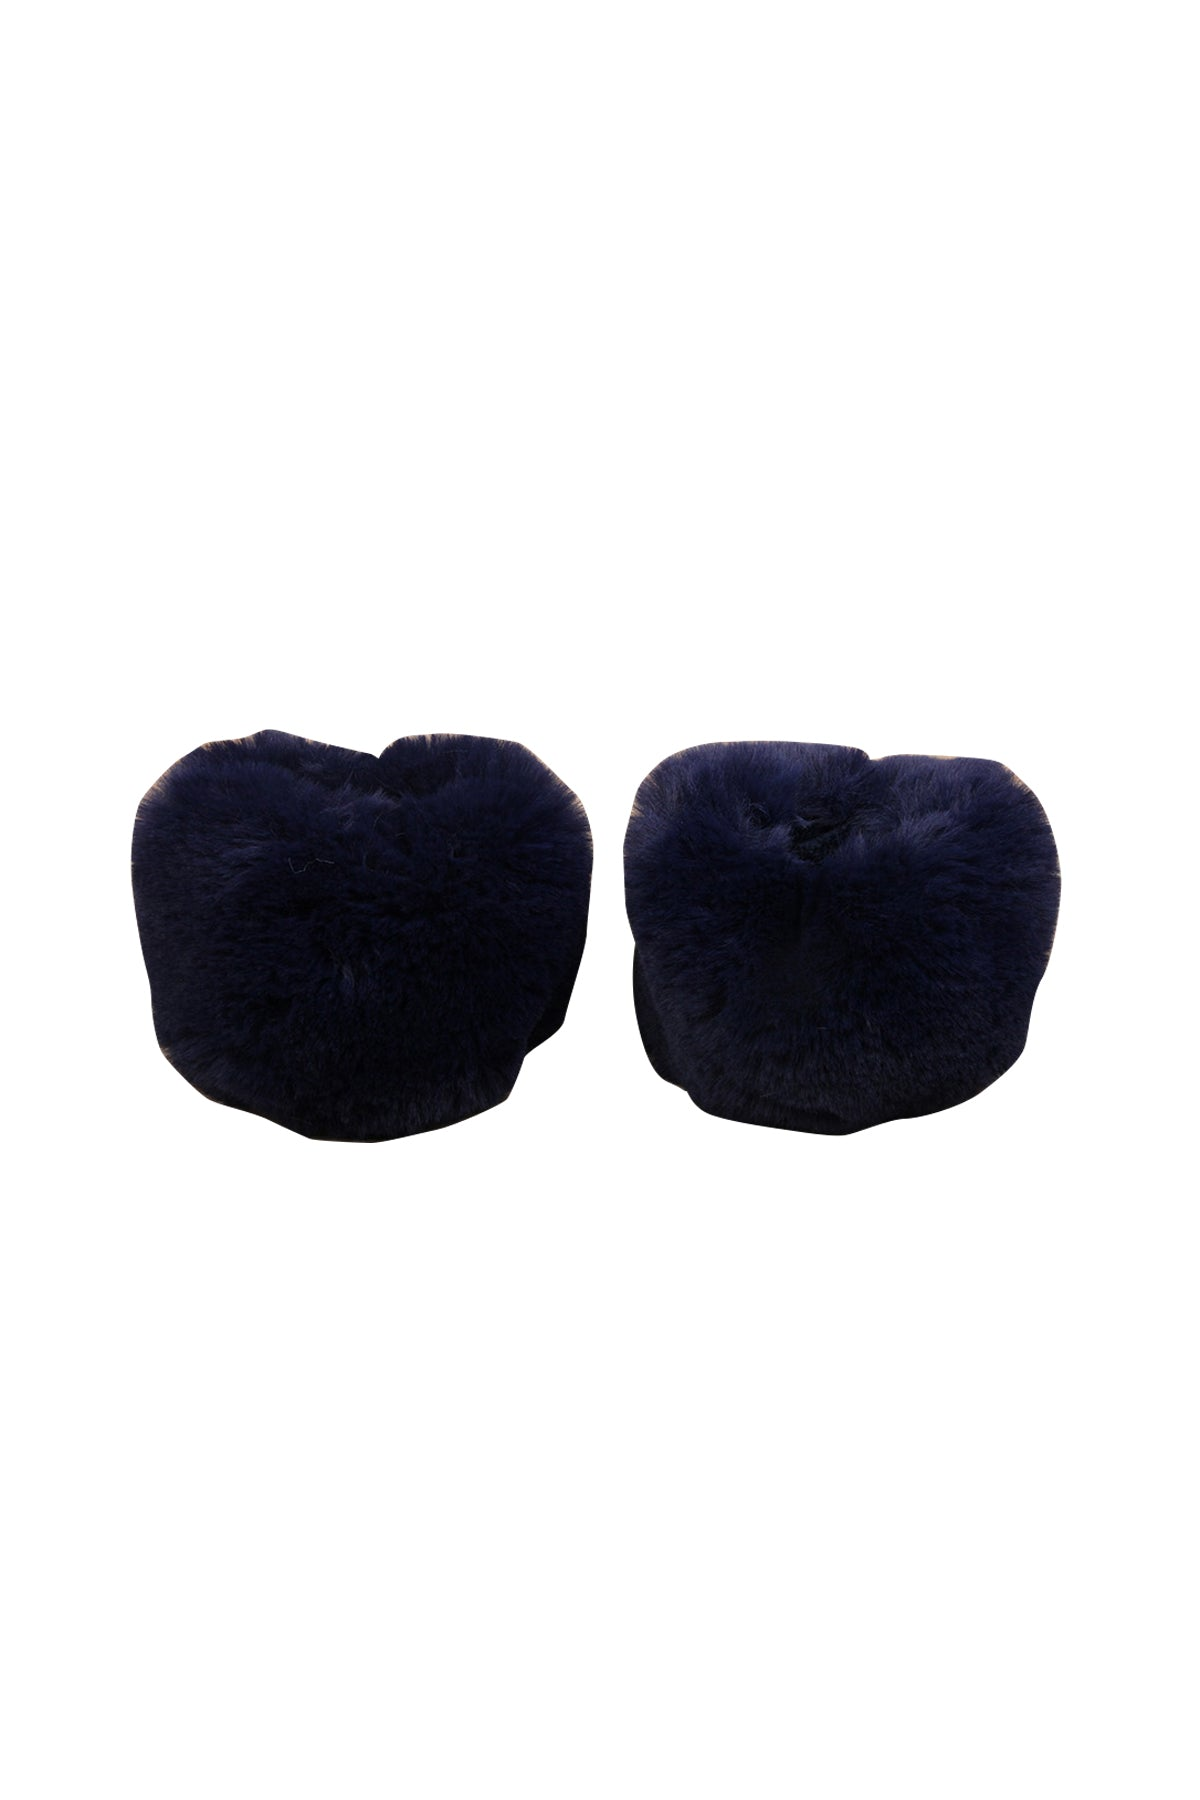 Nola Faux Fur Cuffs Navy